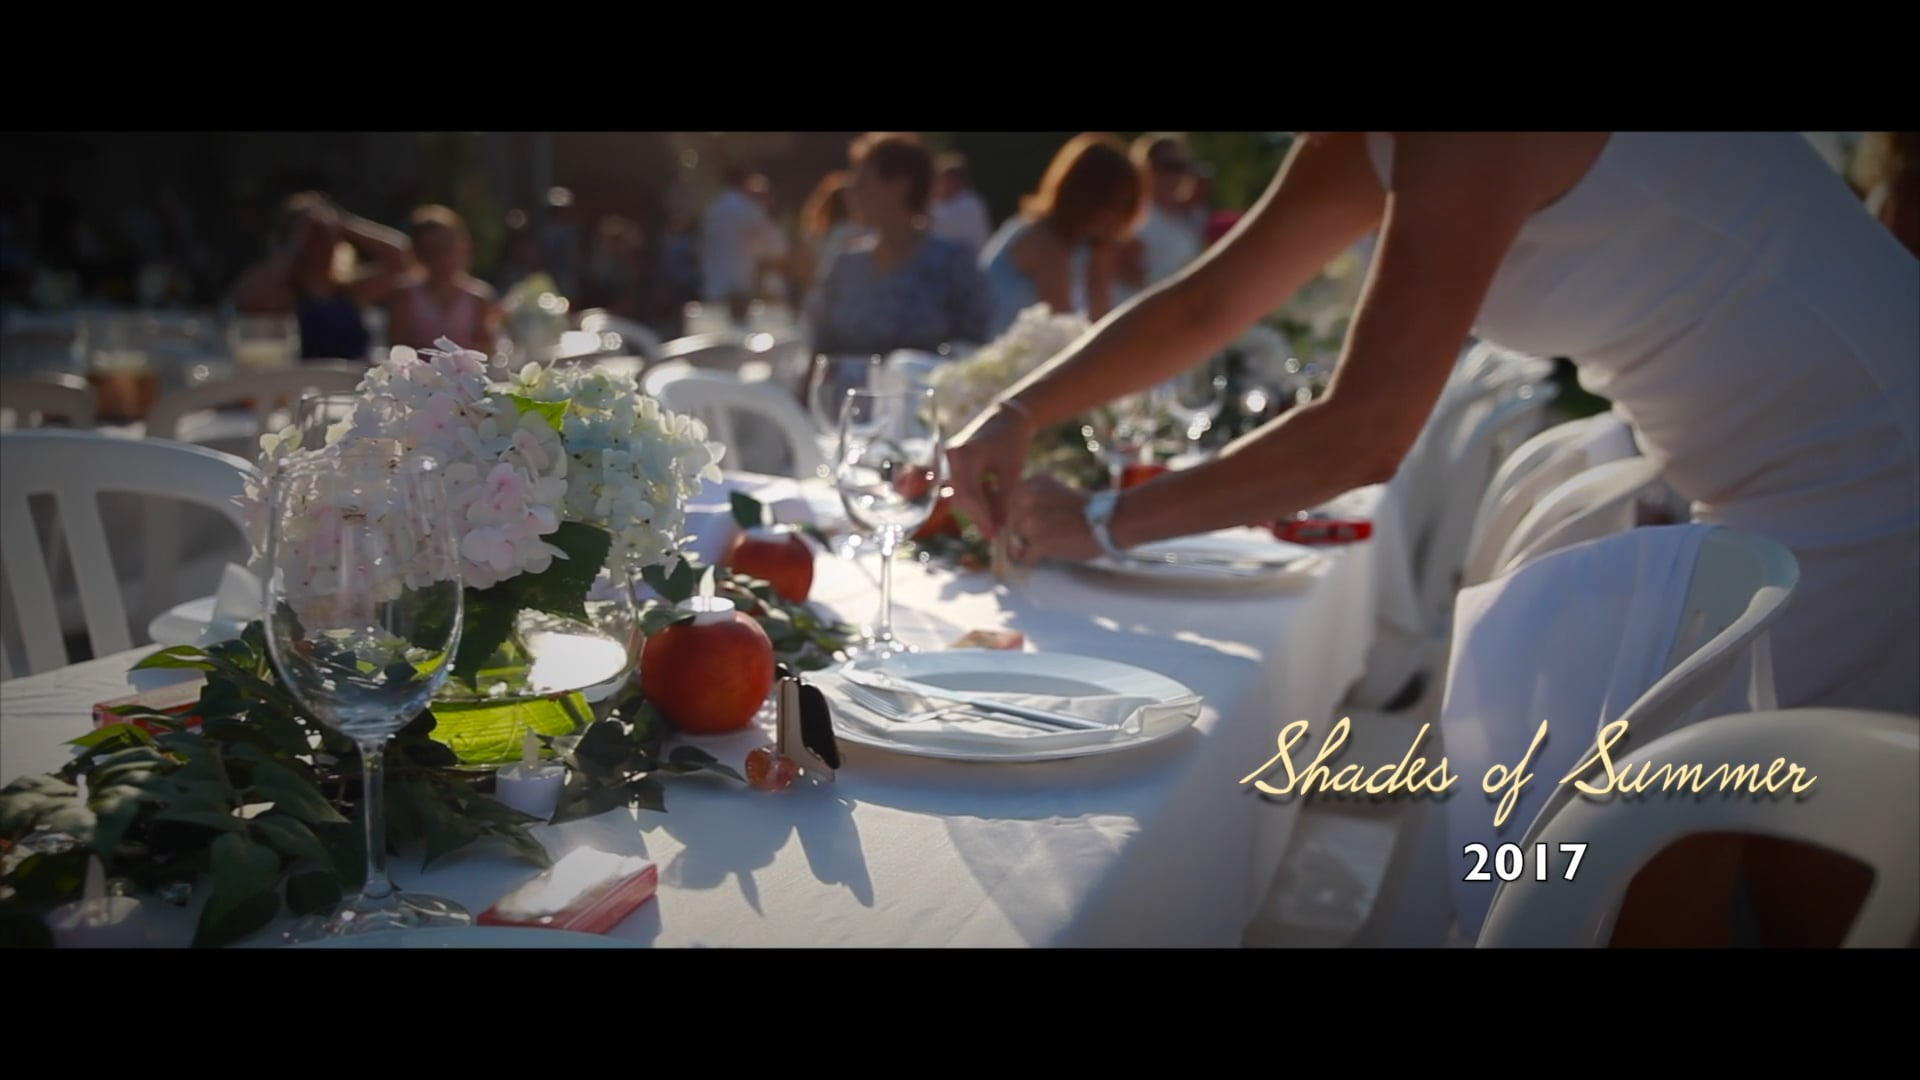 Shades of Summer Dinner Event - Niagara on the Lake 2017